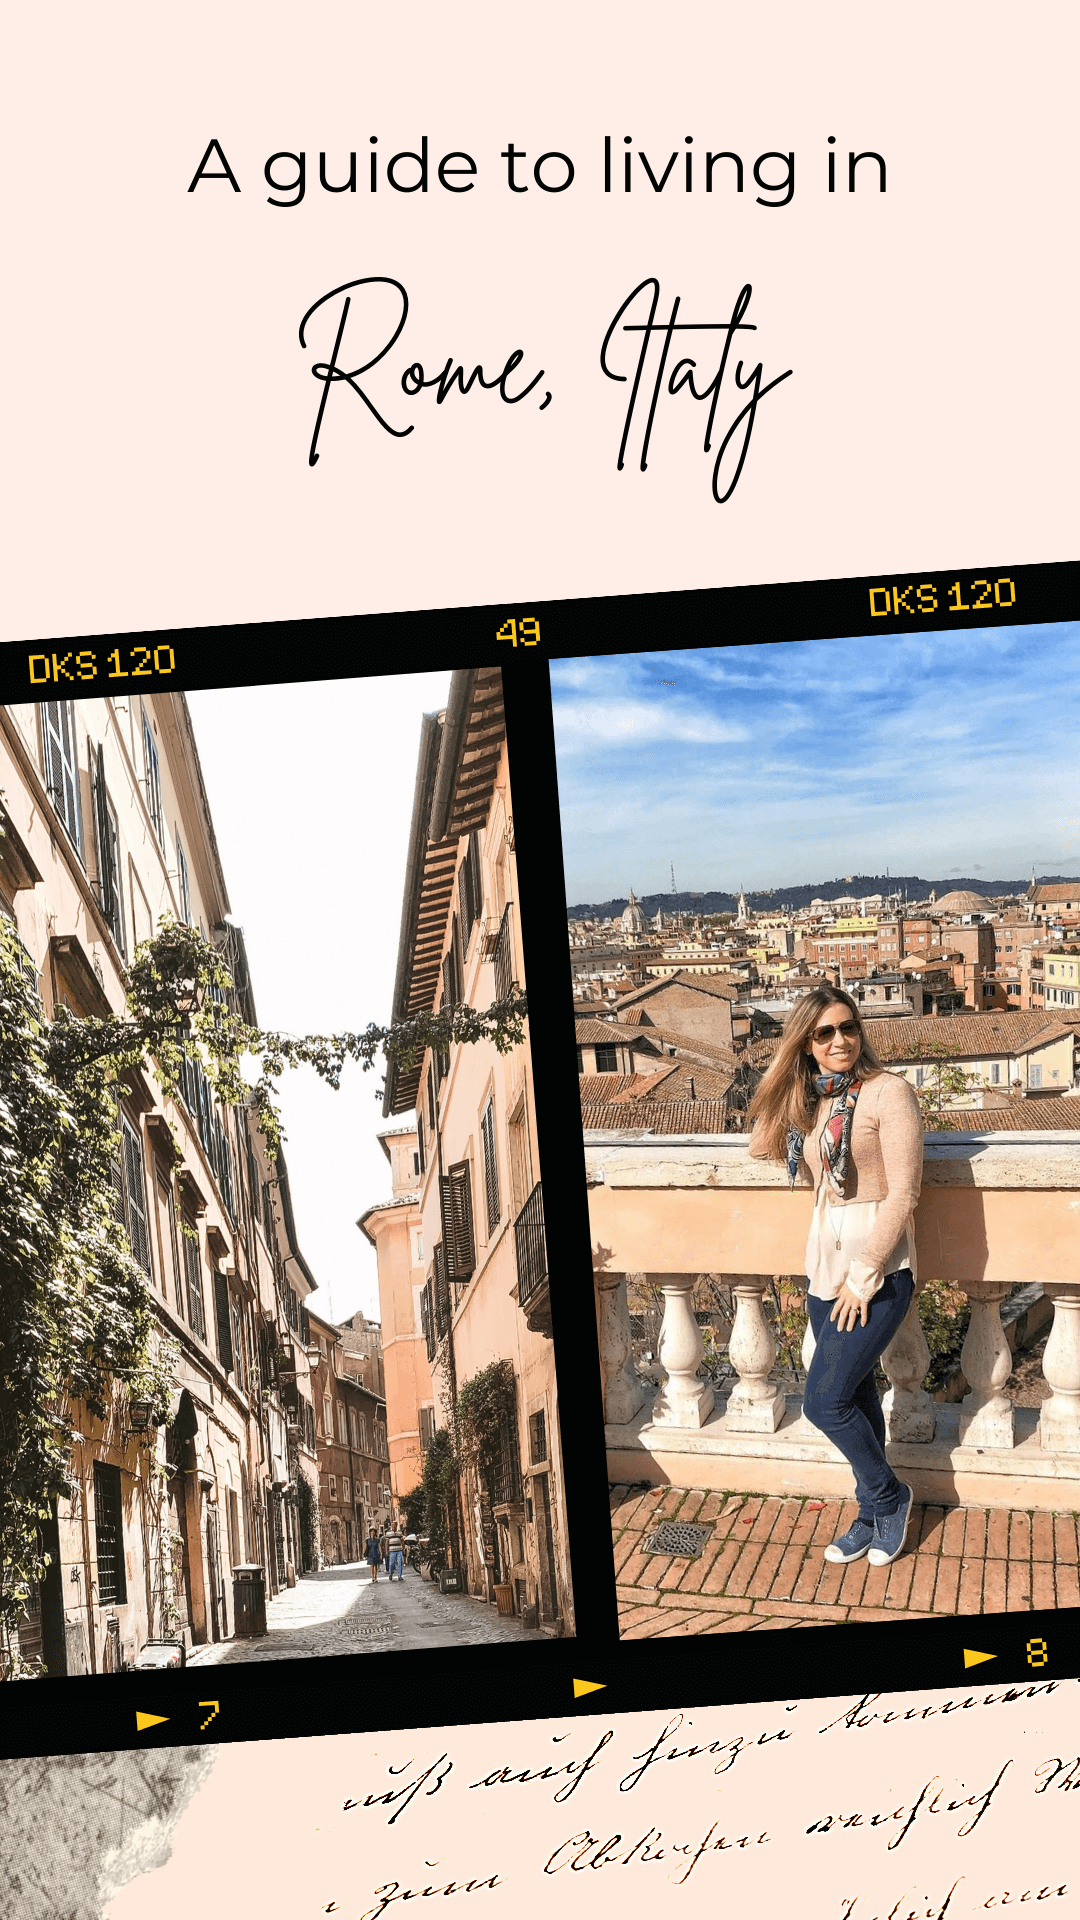 moving to Rome, Italy